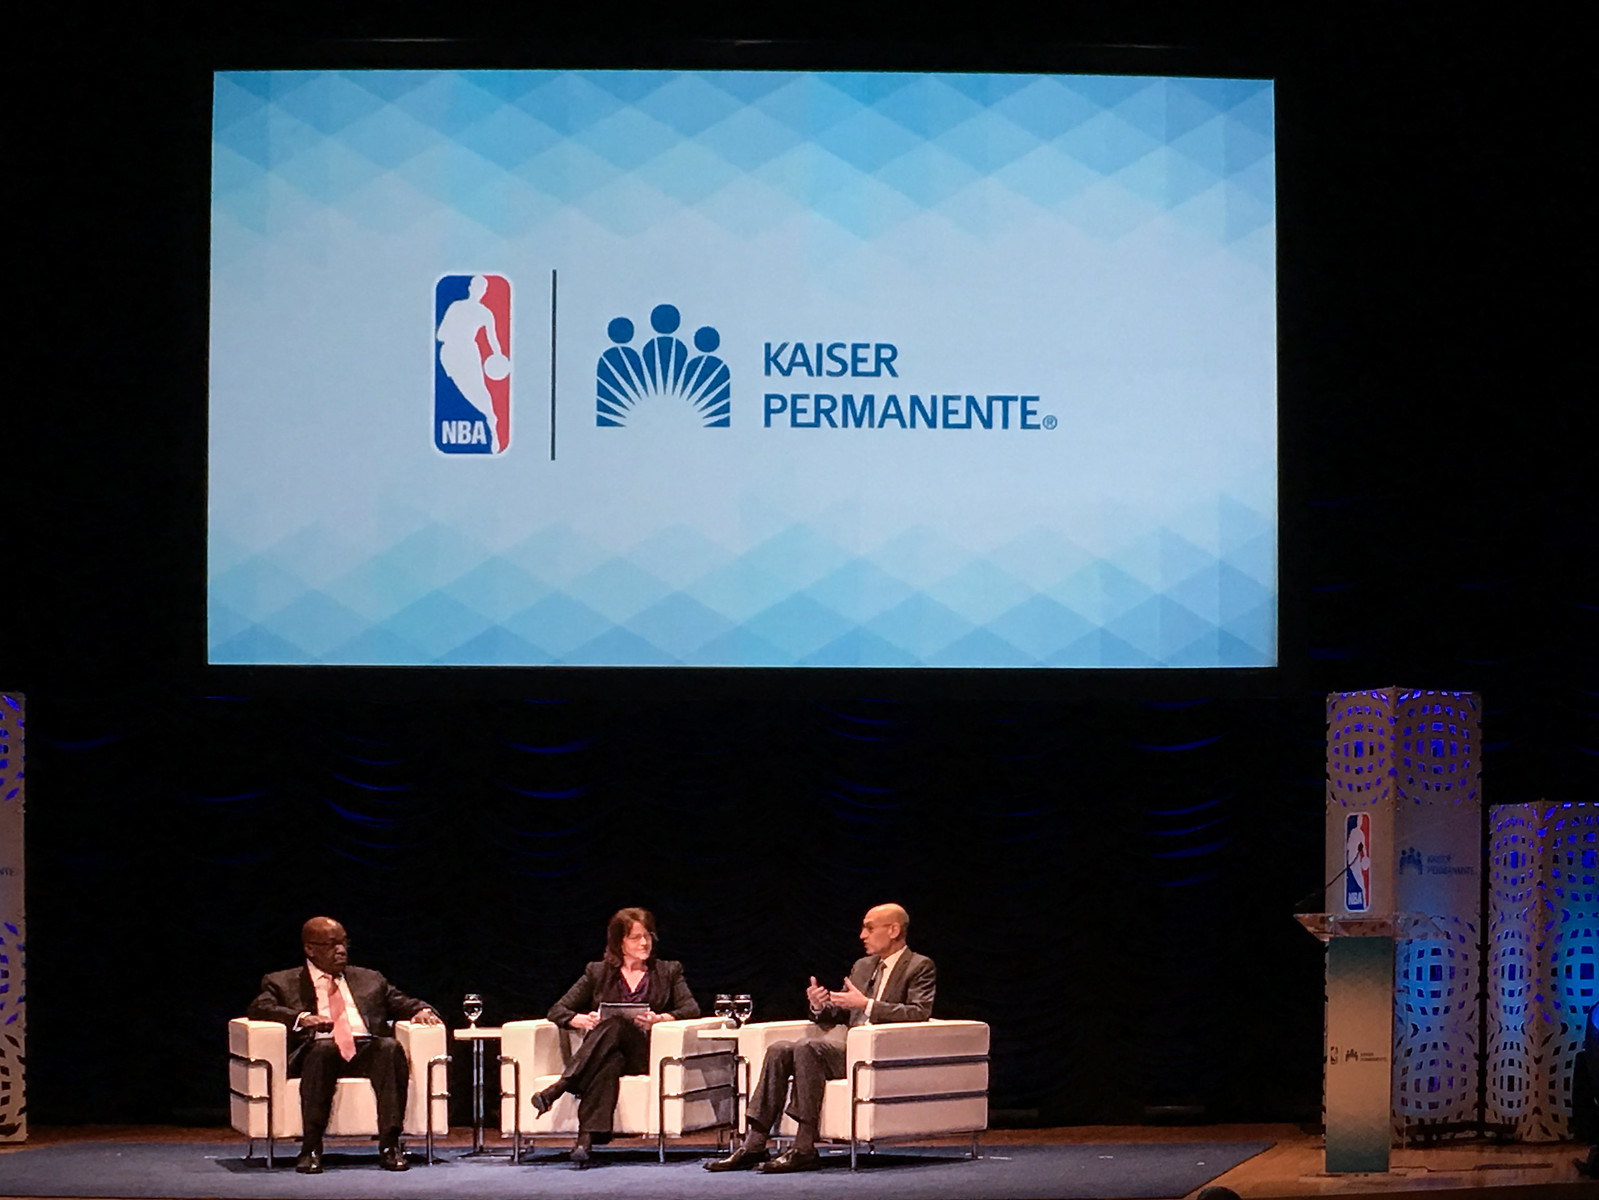 Partnering for Health: The #TotalHealthForum hosted by Kaiser Permanente and the NBA